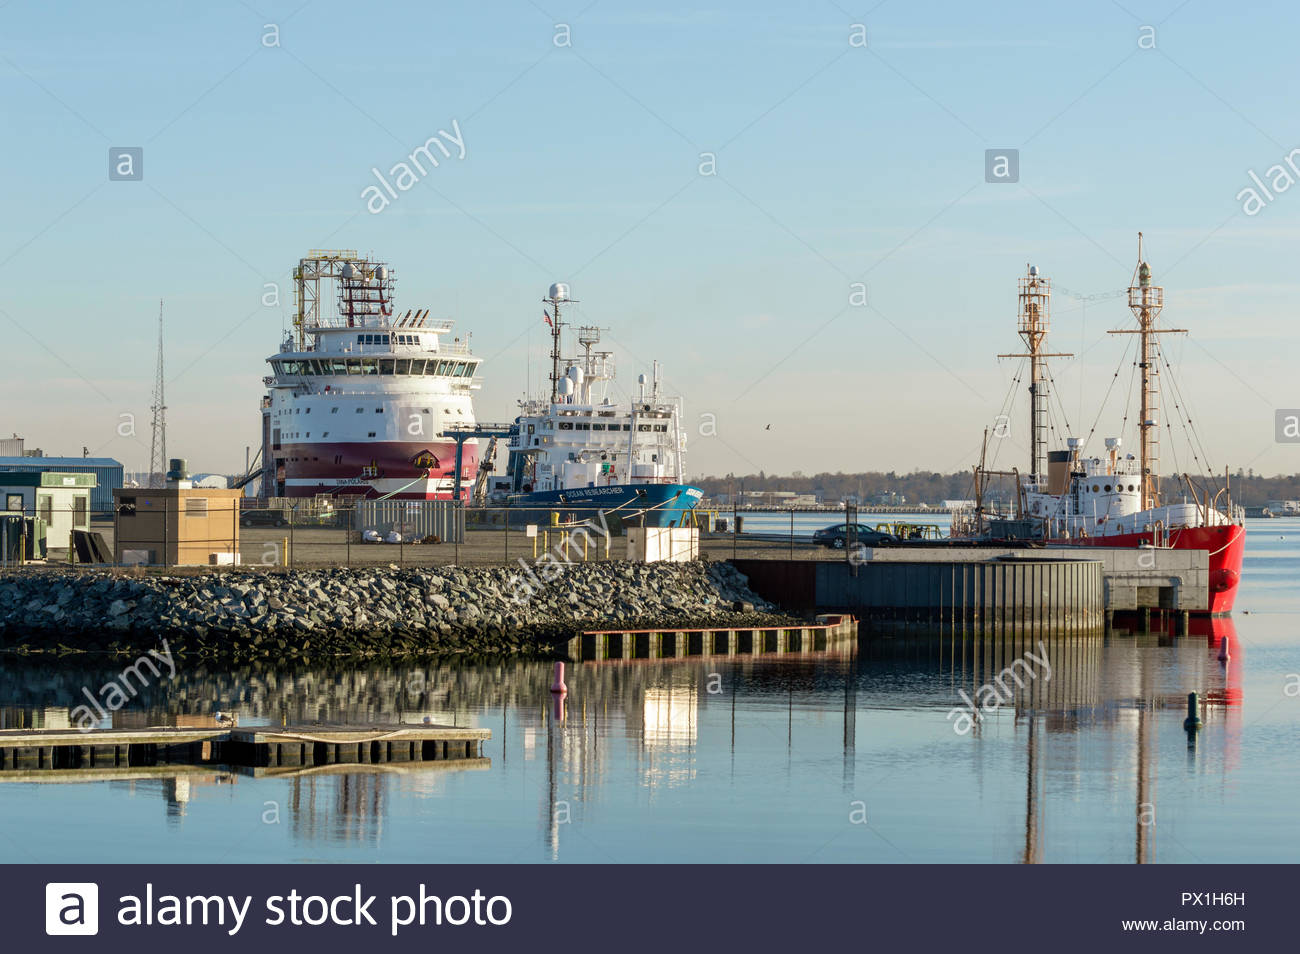 New Bedford, Massachusetts, USA - April 24, 2018: Geotechnical drilling vessel Dina Polaris, research vessel Ocean Researcher and charter Nantucket - Stock Image